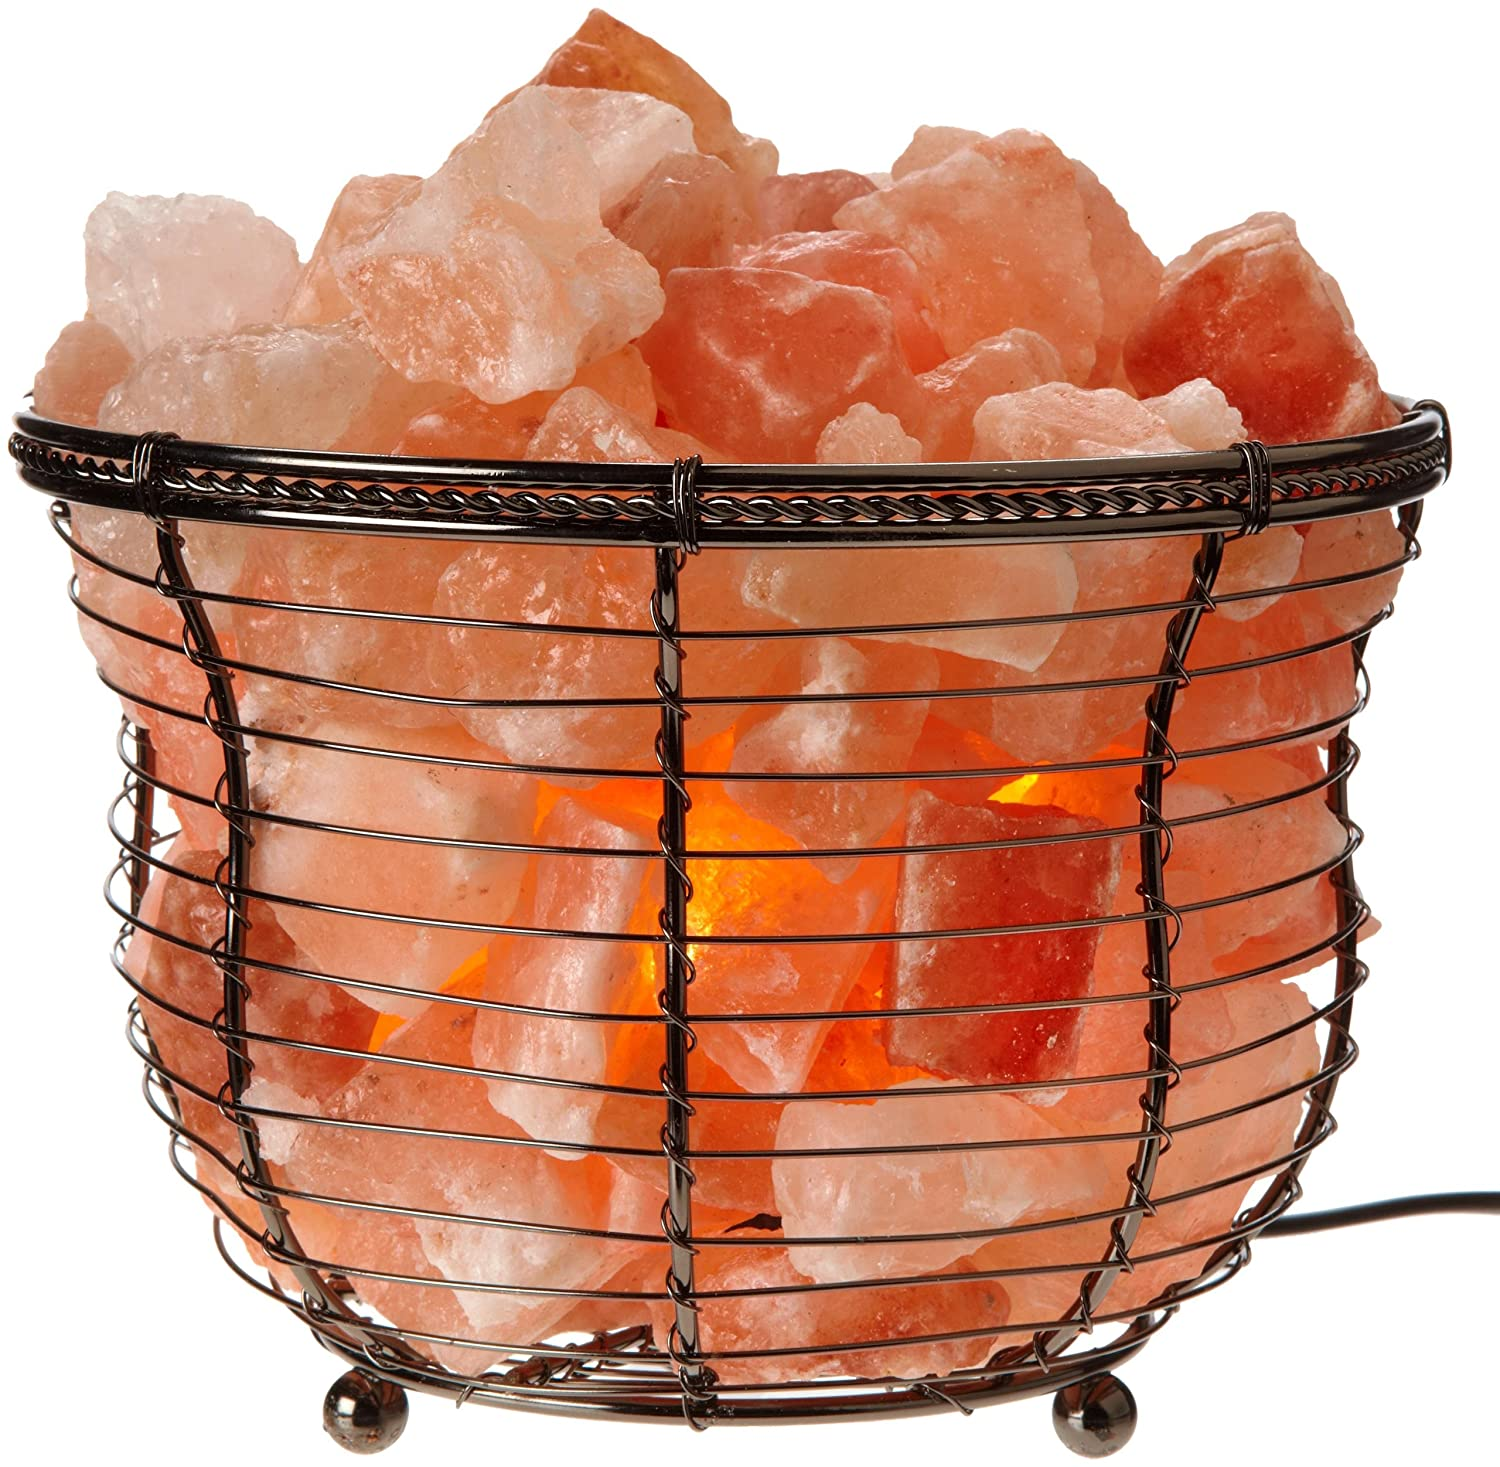 Salt Lamps Positive Energy : Himalayan Salt Lamp